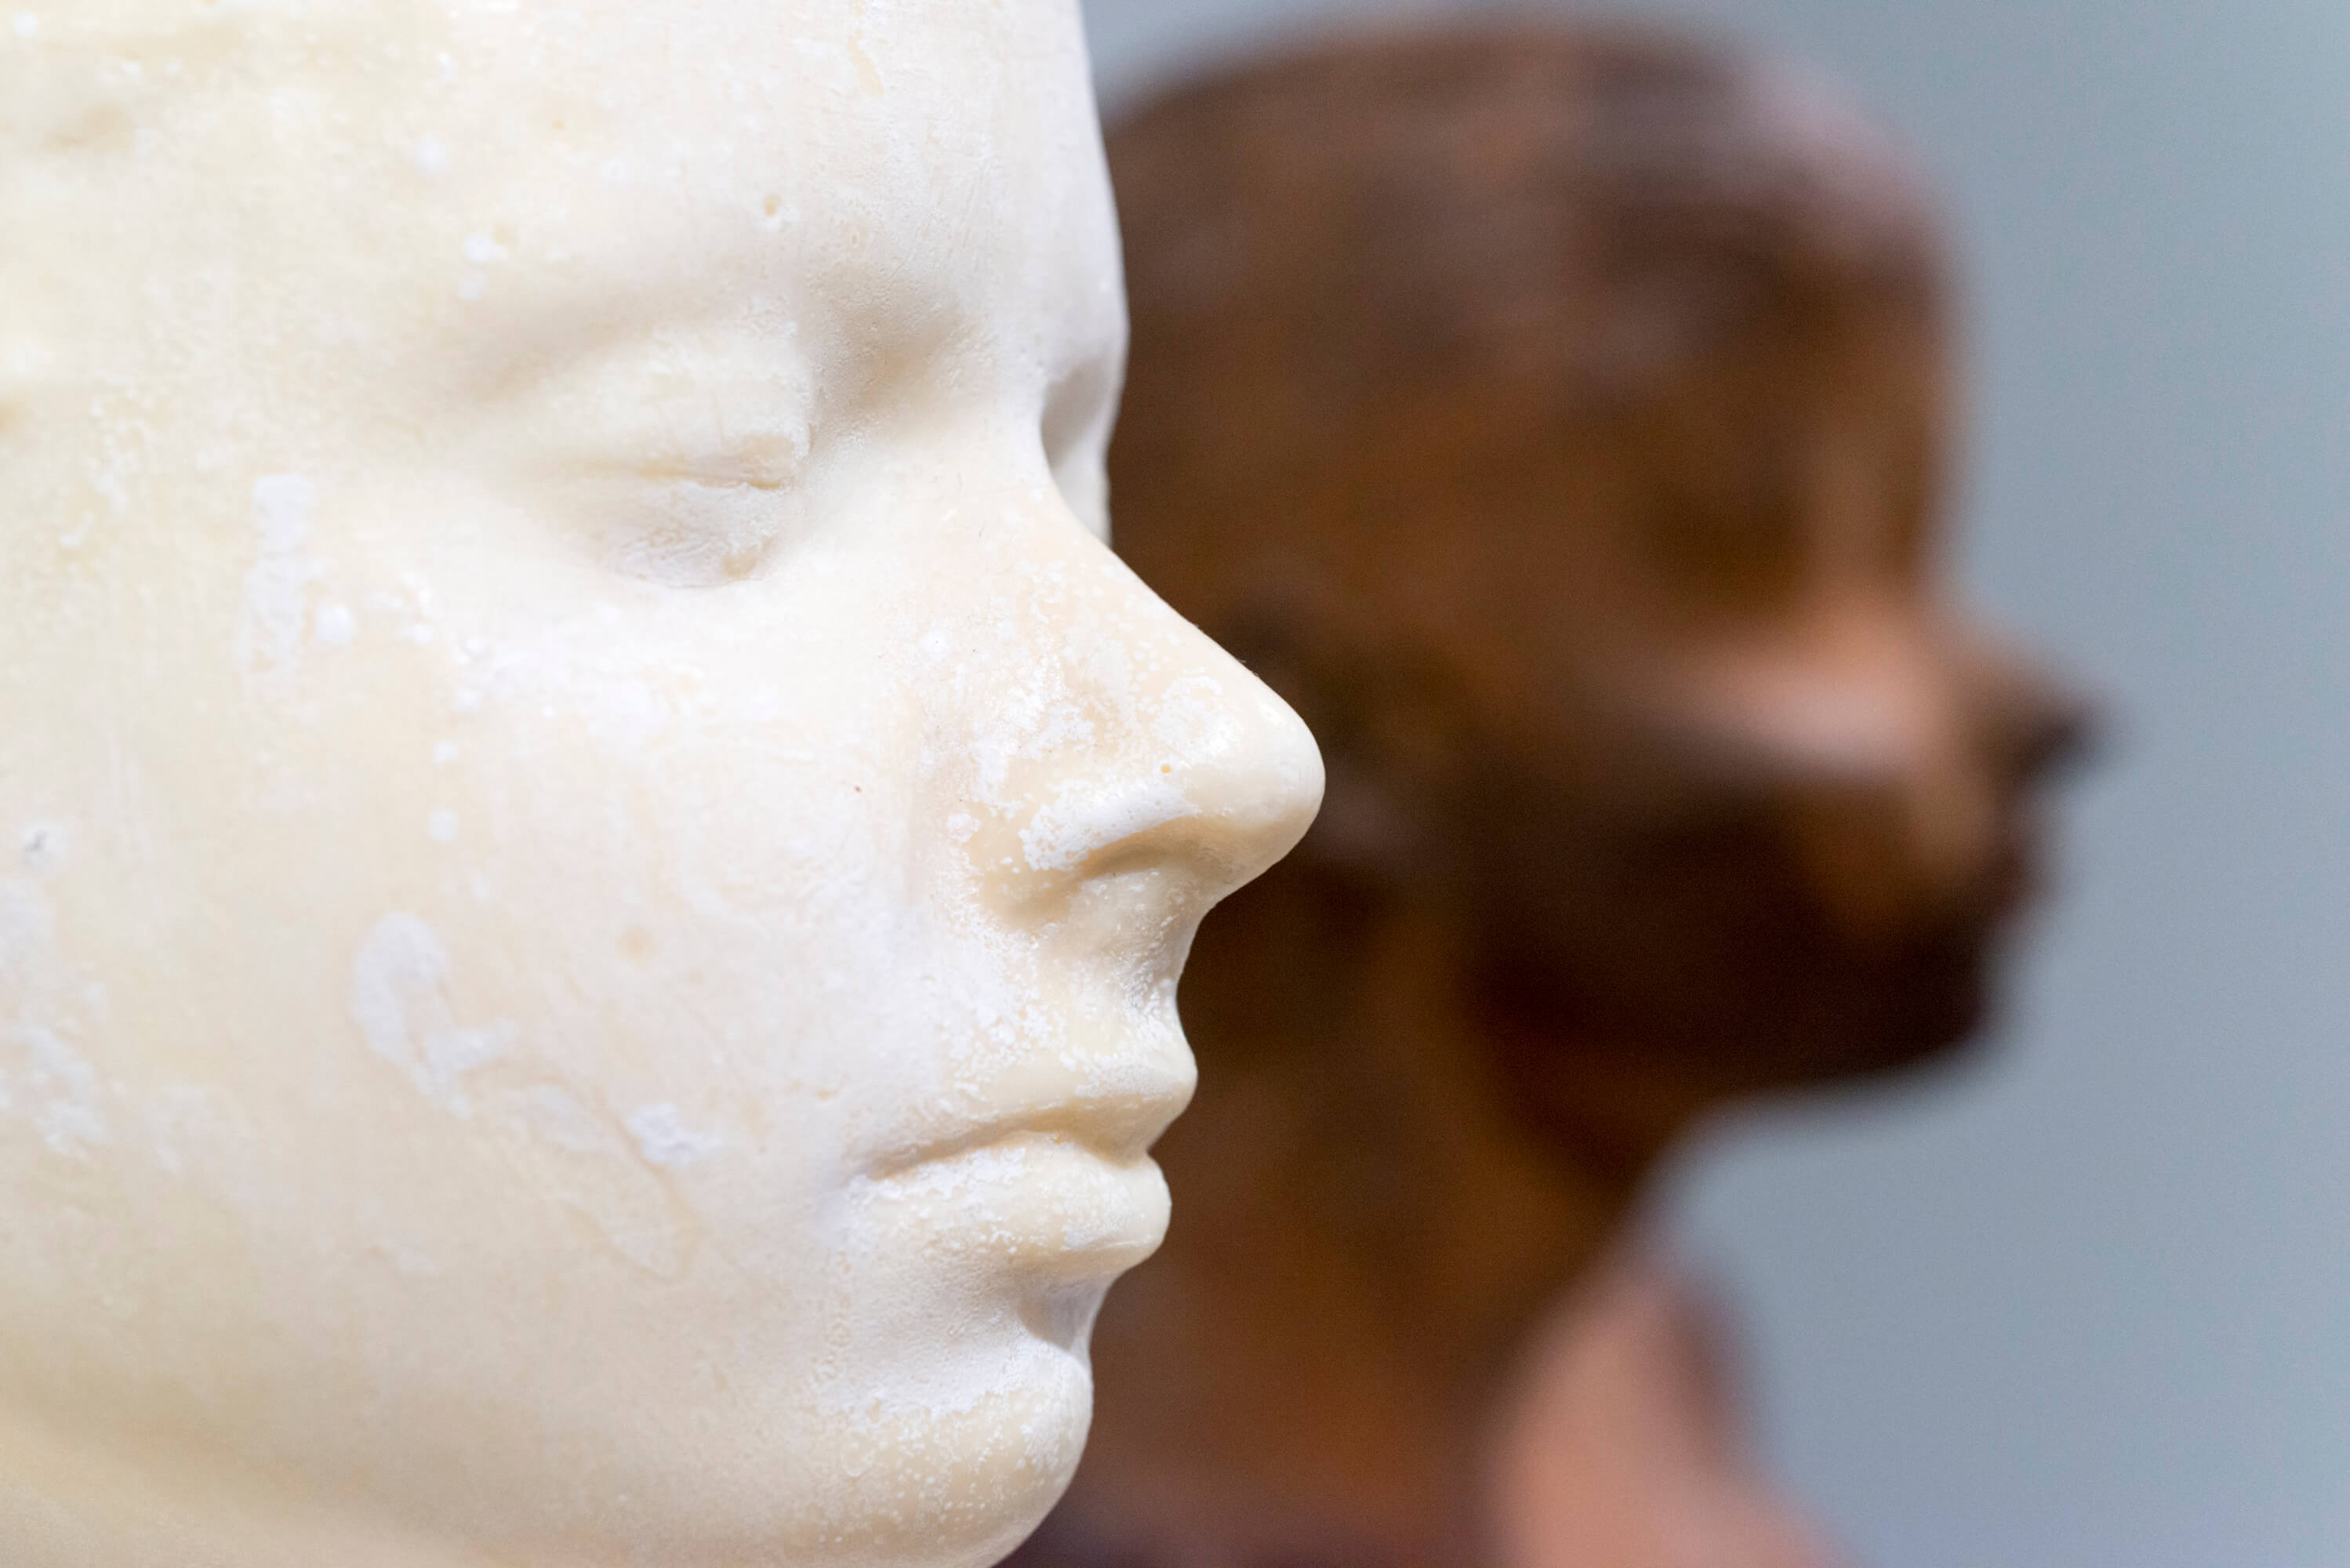 Janine Antoni Look At Me!